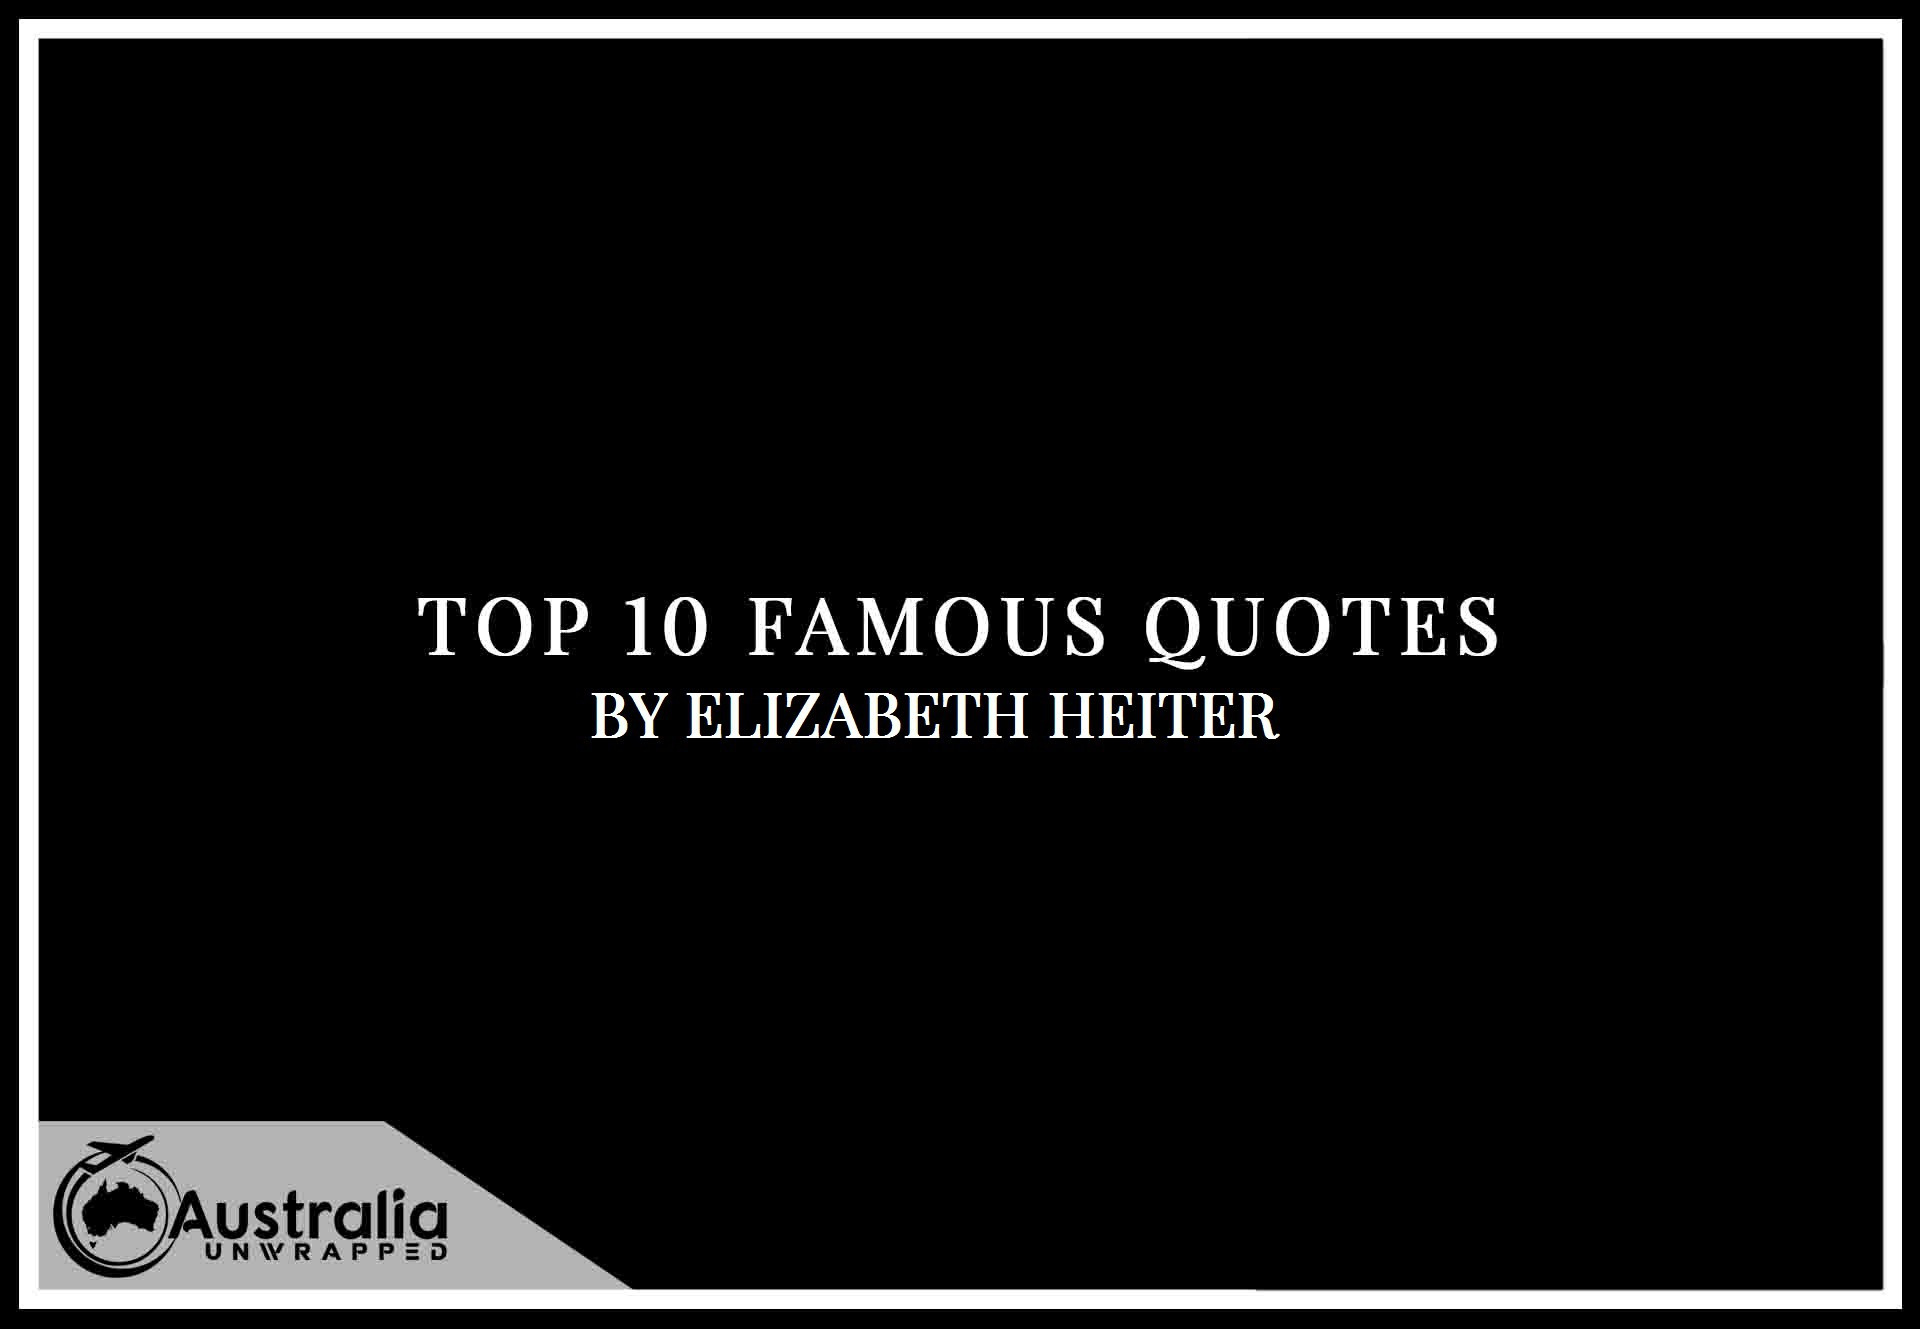 Elizabeth Heiter's Top 10 Popular and Famous Quotes